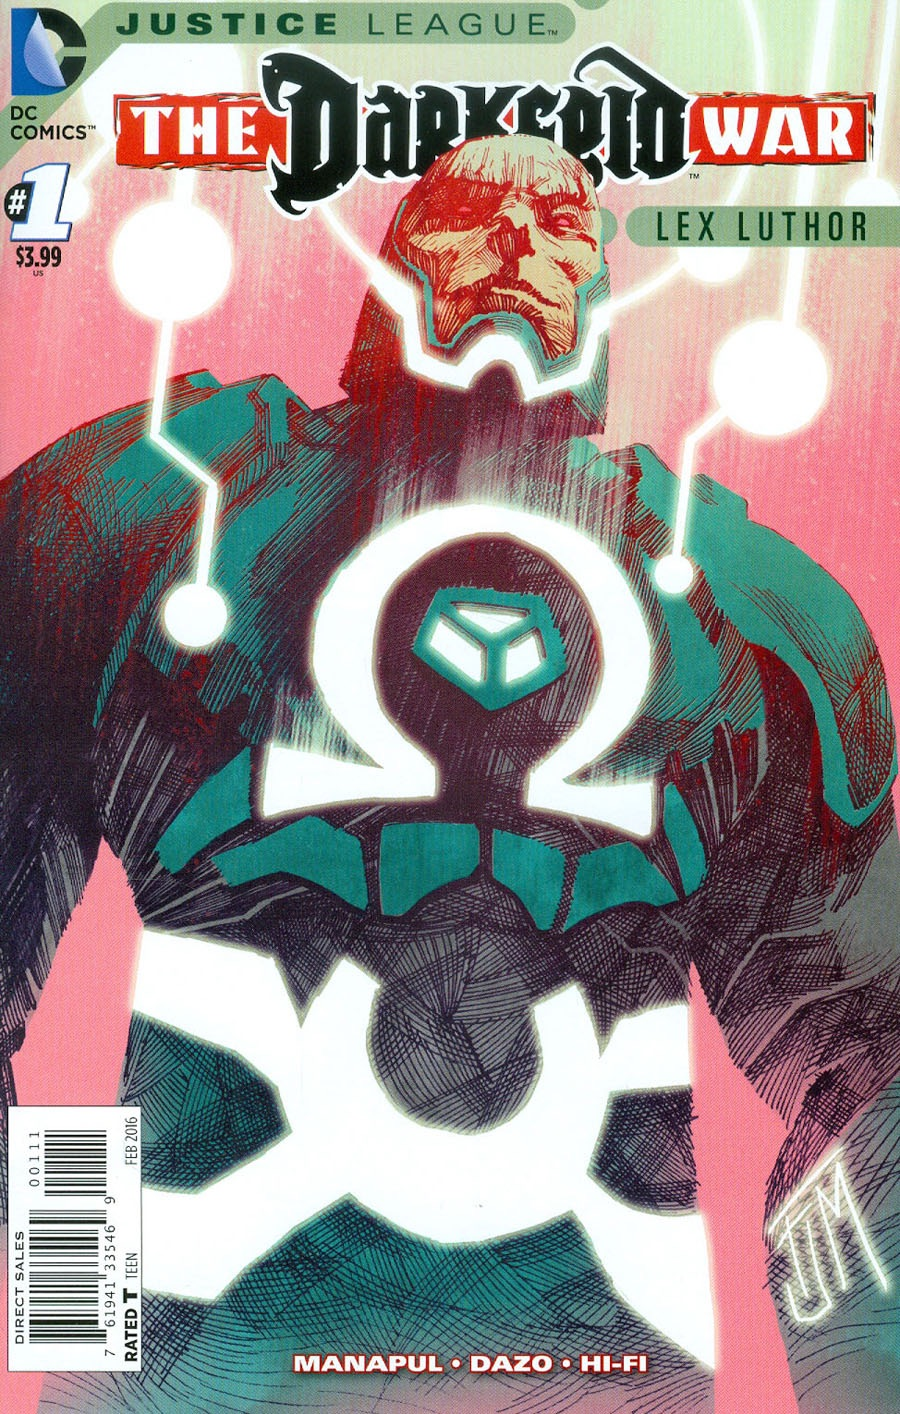 Justice League: Darkseid War - Lex Luthor #1